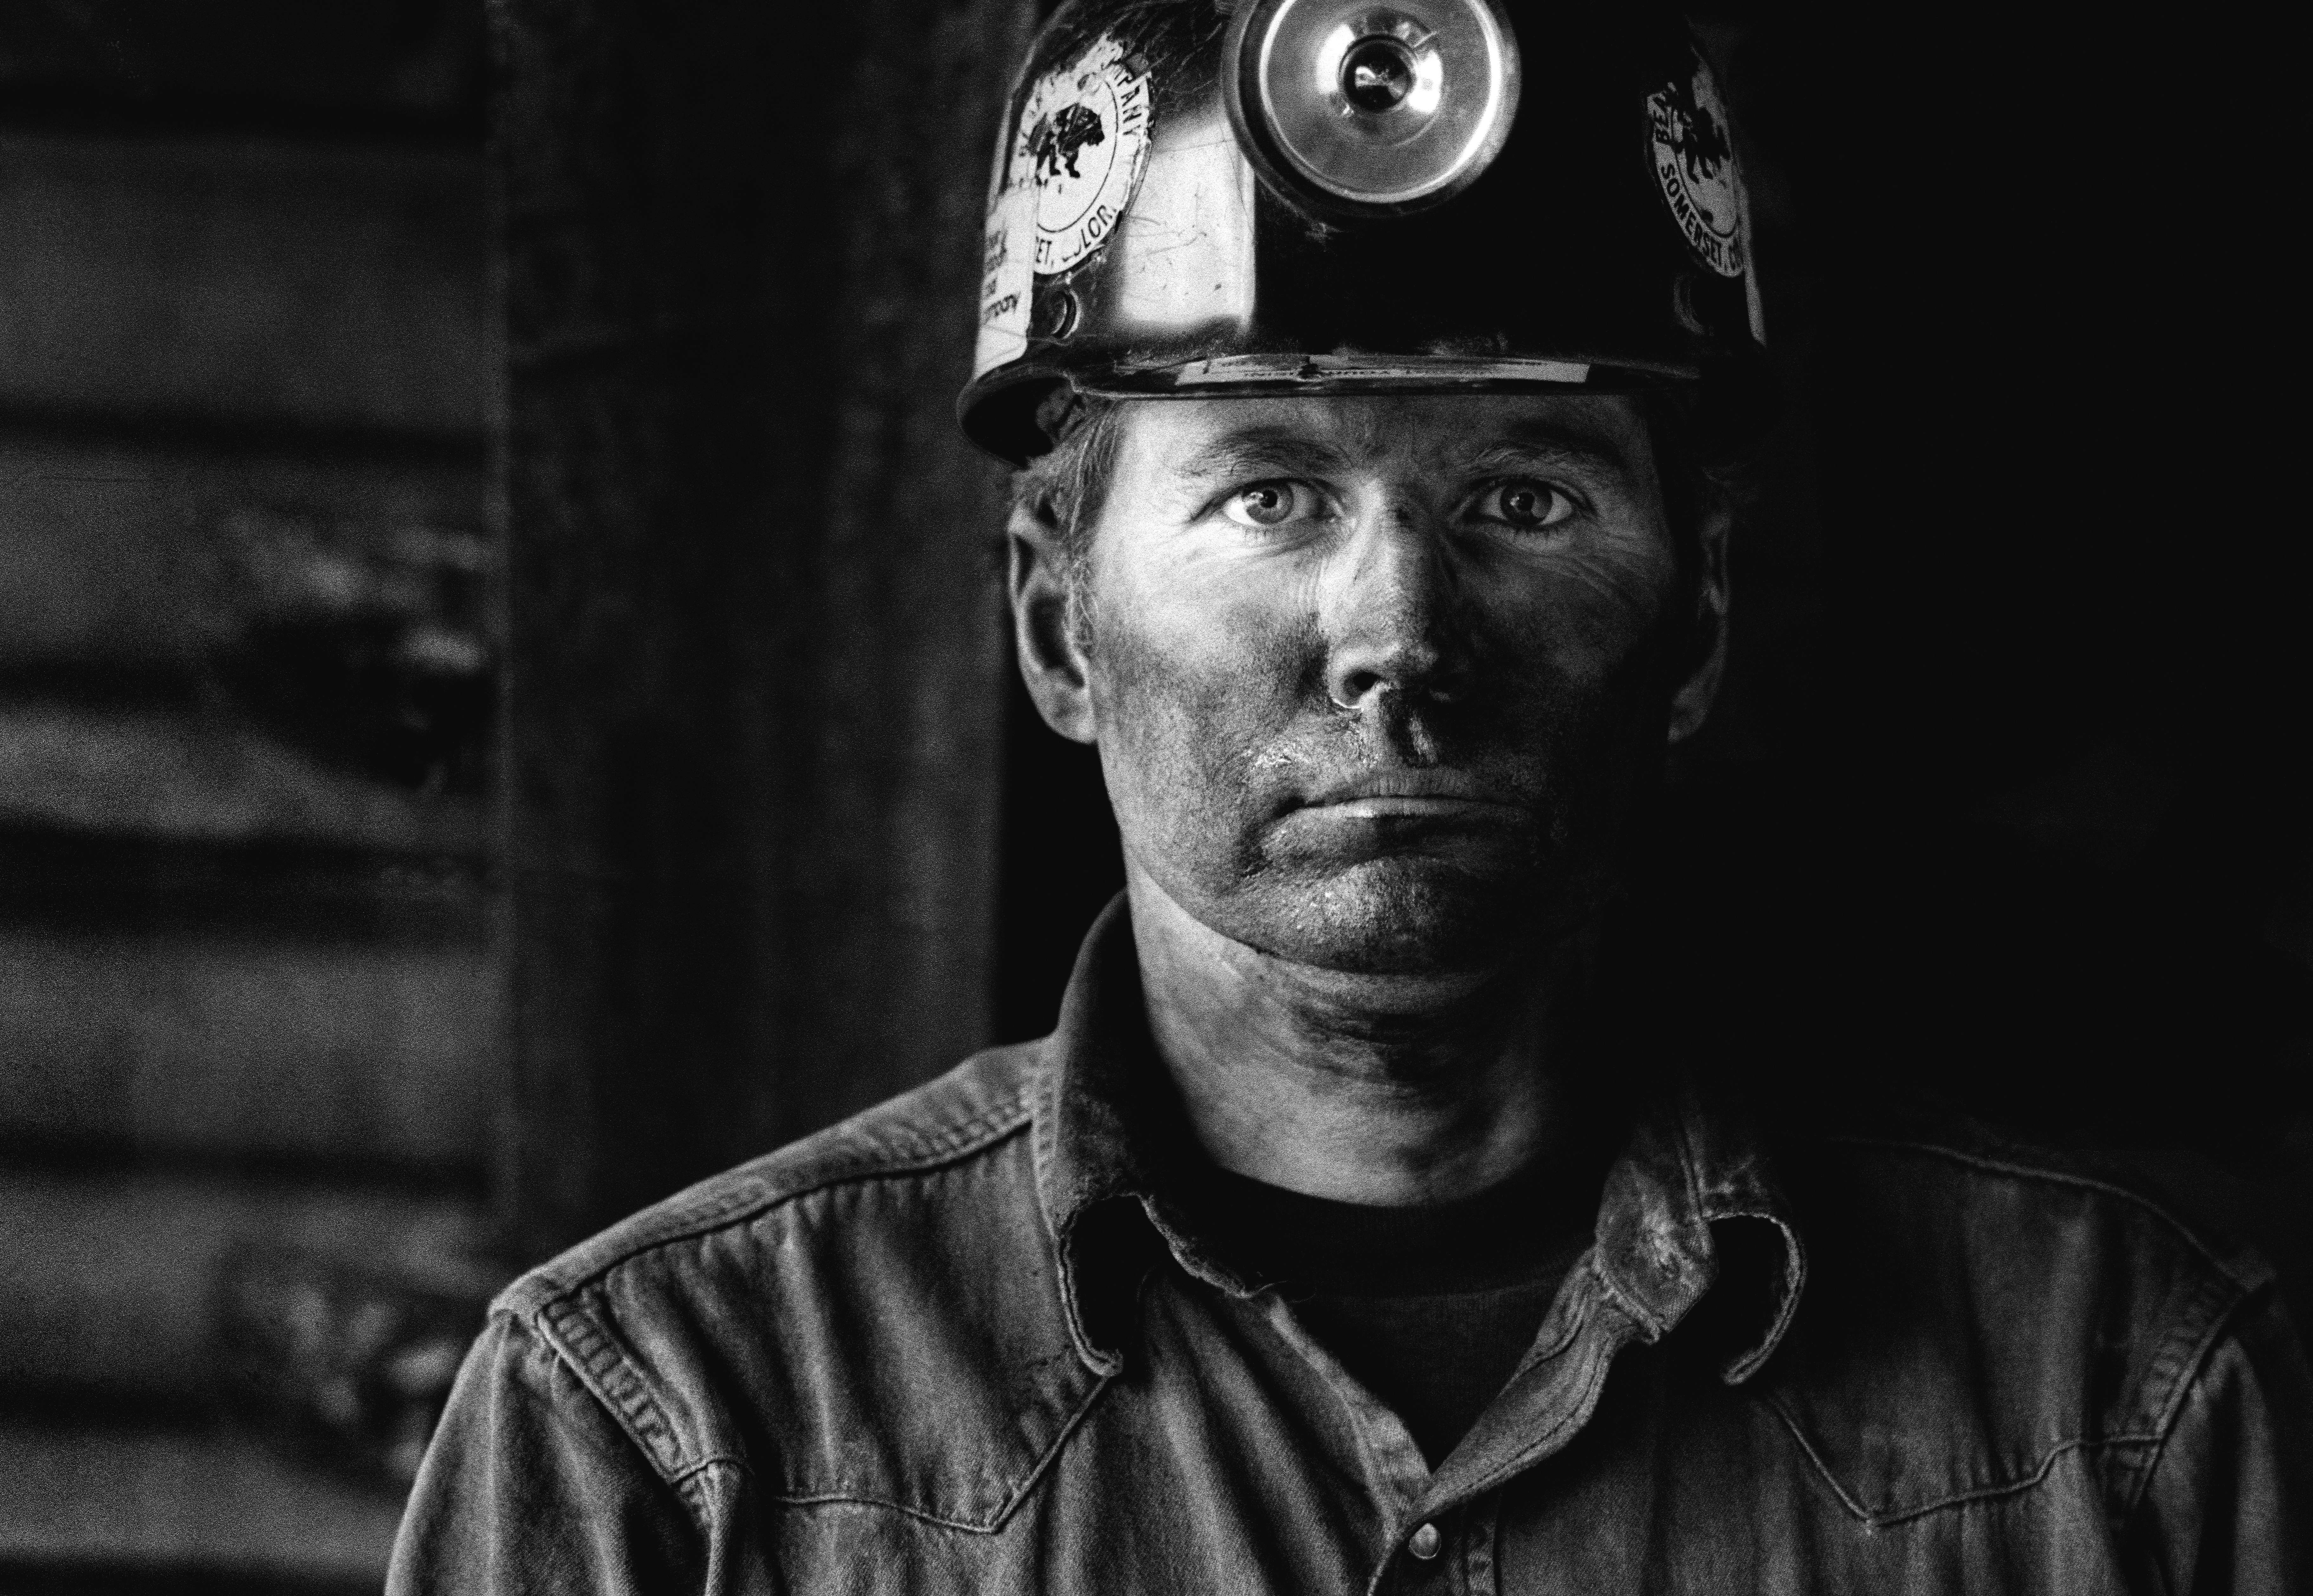 Coal miner covered in coal dust